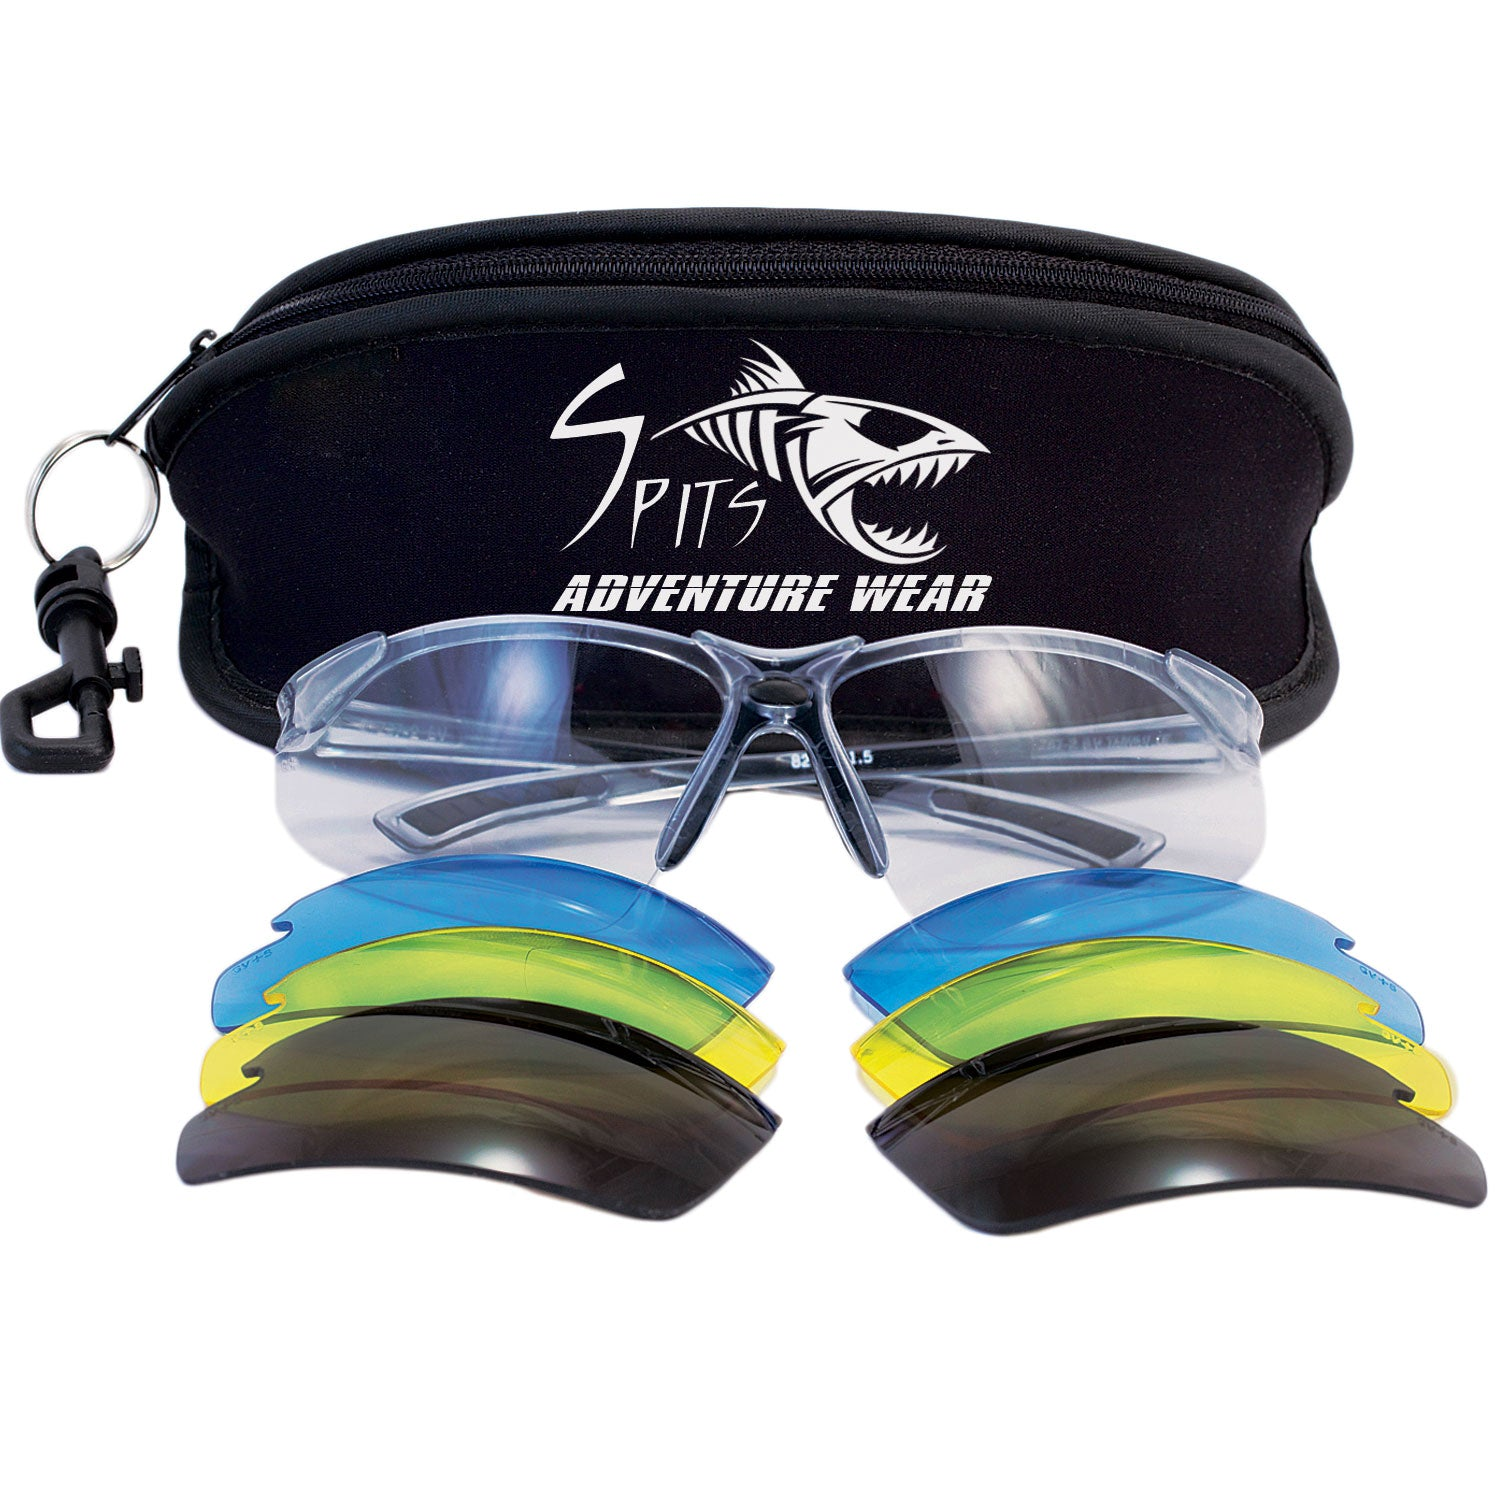 079519d21eea Thresher Running/Cycling Safety Glasses Z87.1 Sunglasses Lens Kit ...